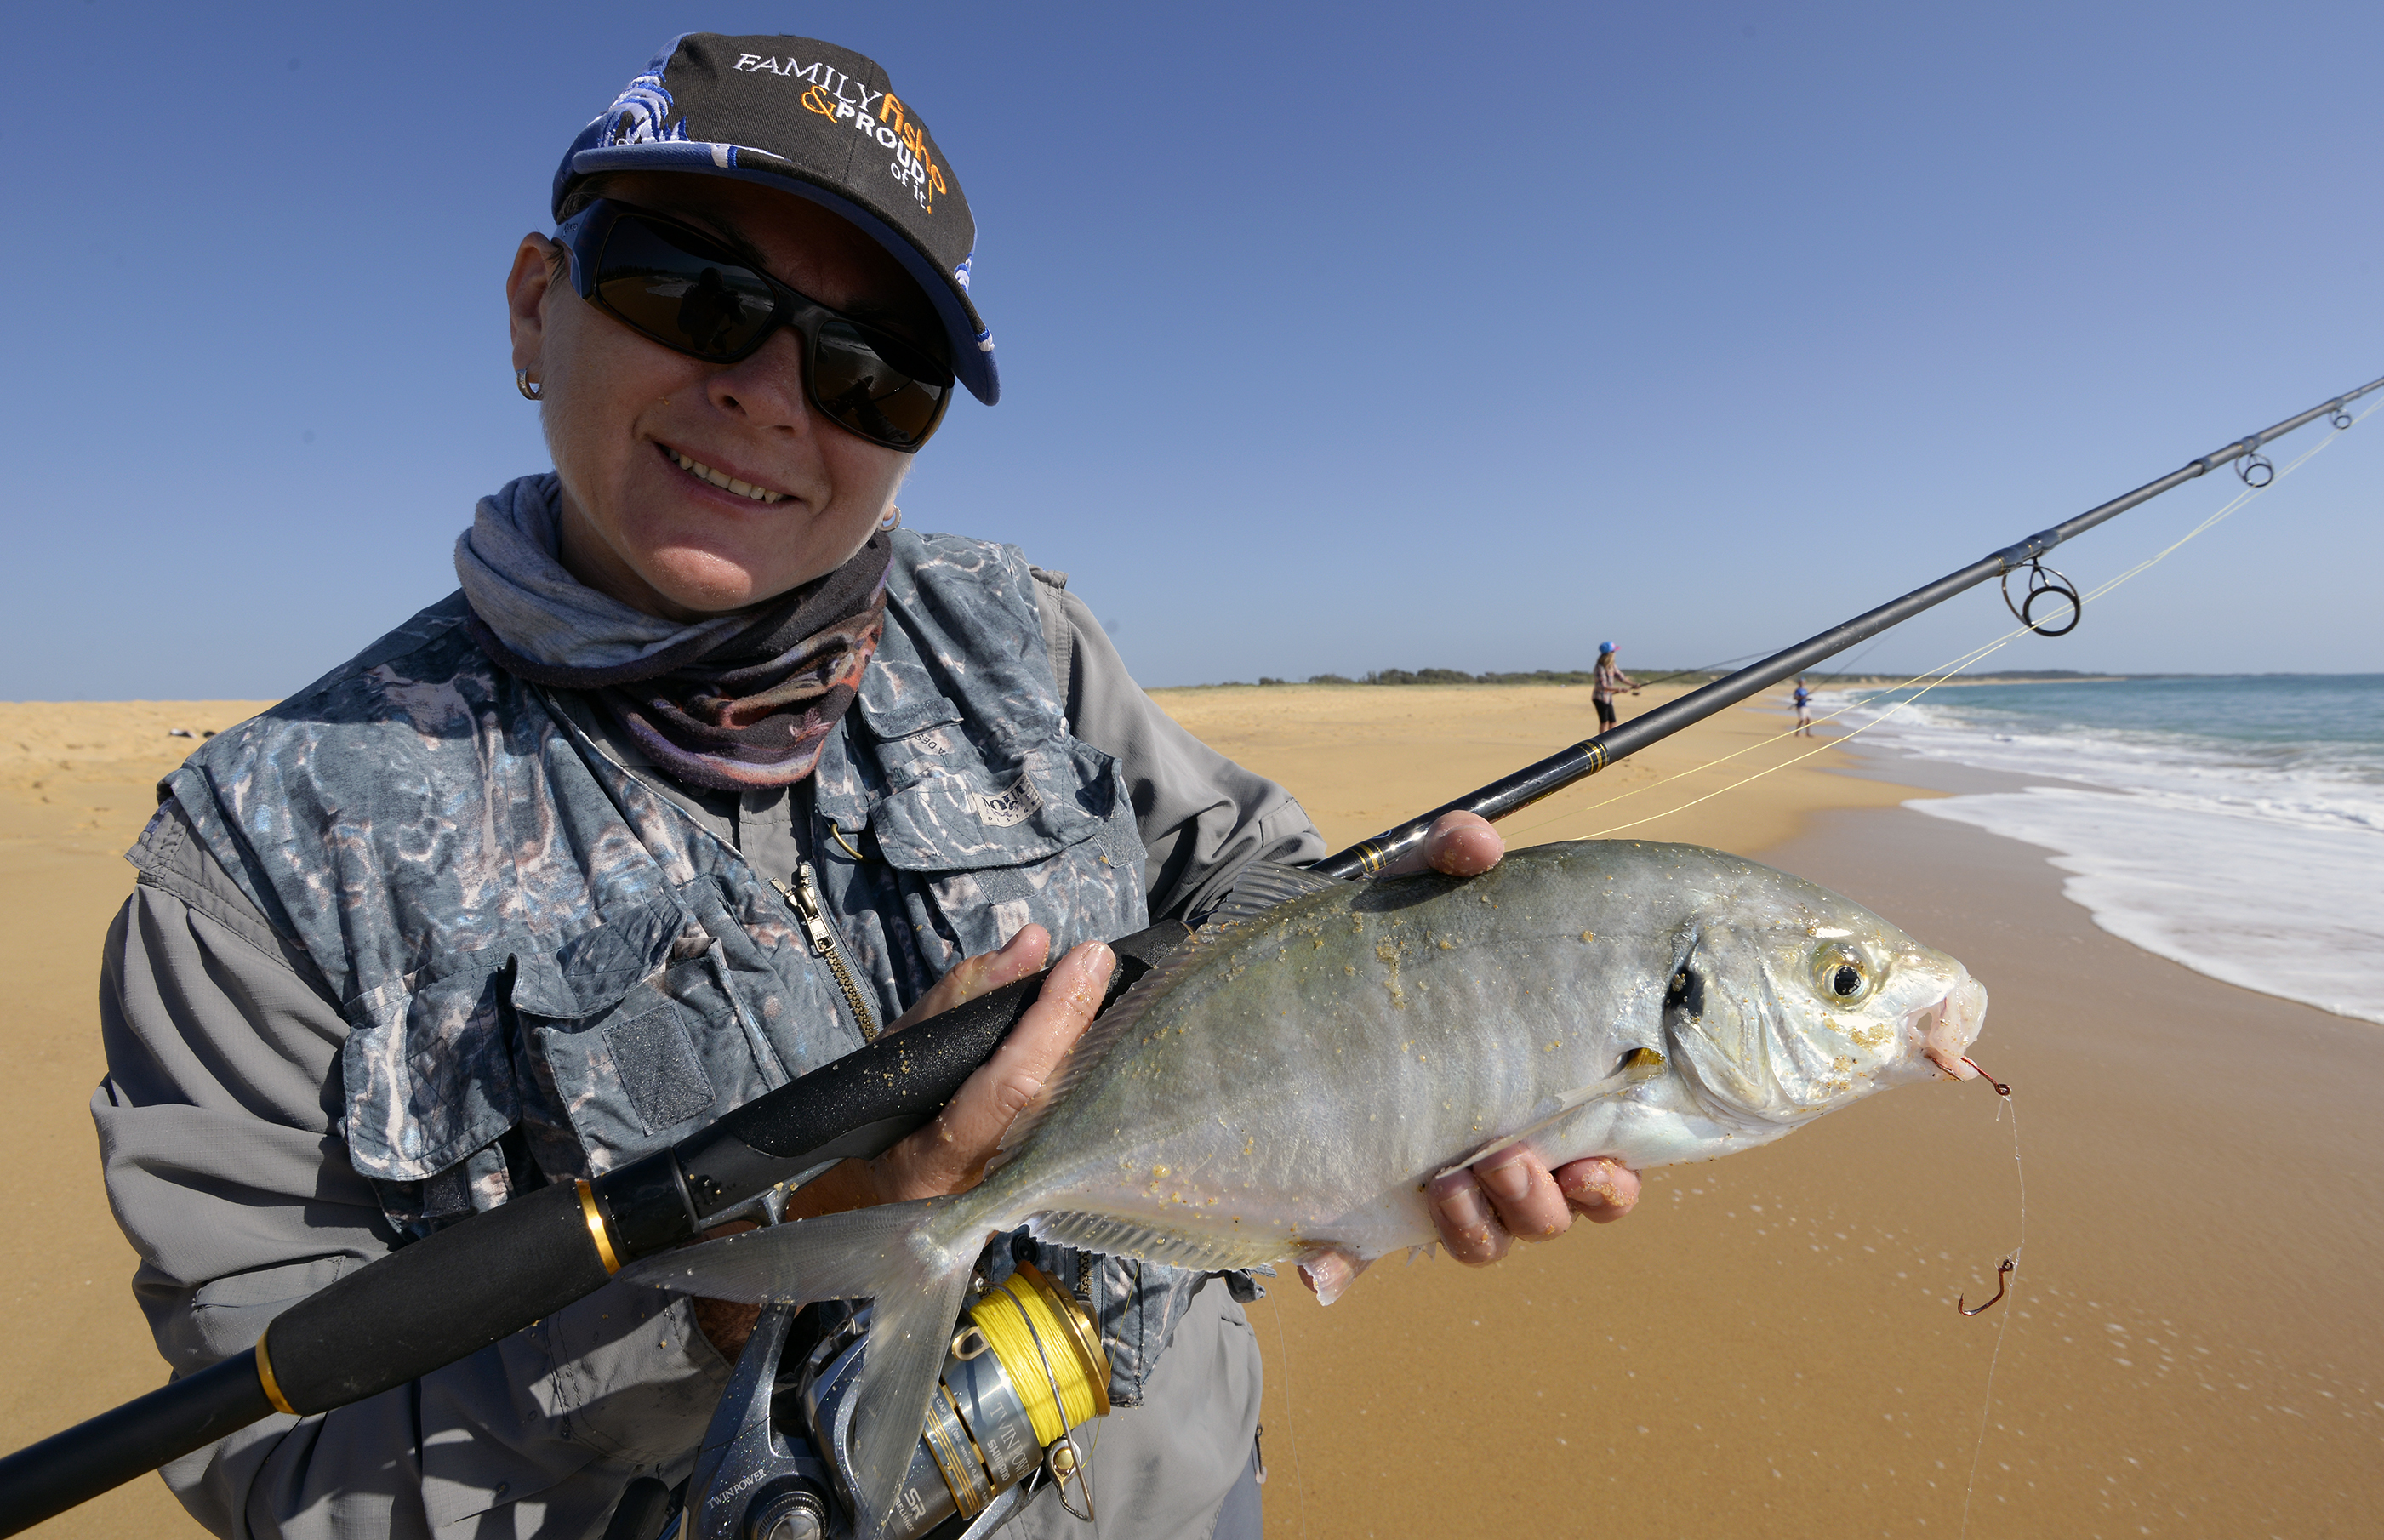 Well-filled reels cast better, but don't overdo it, especially when using braid.